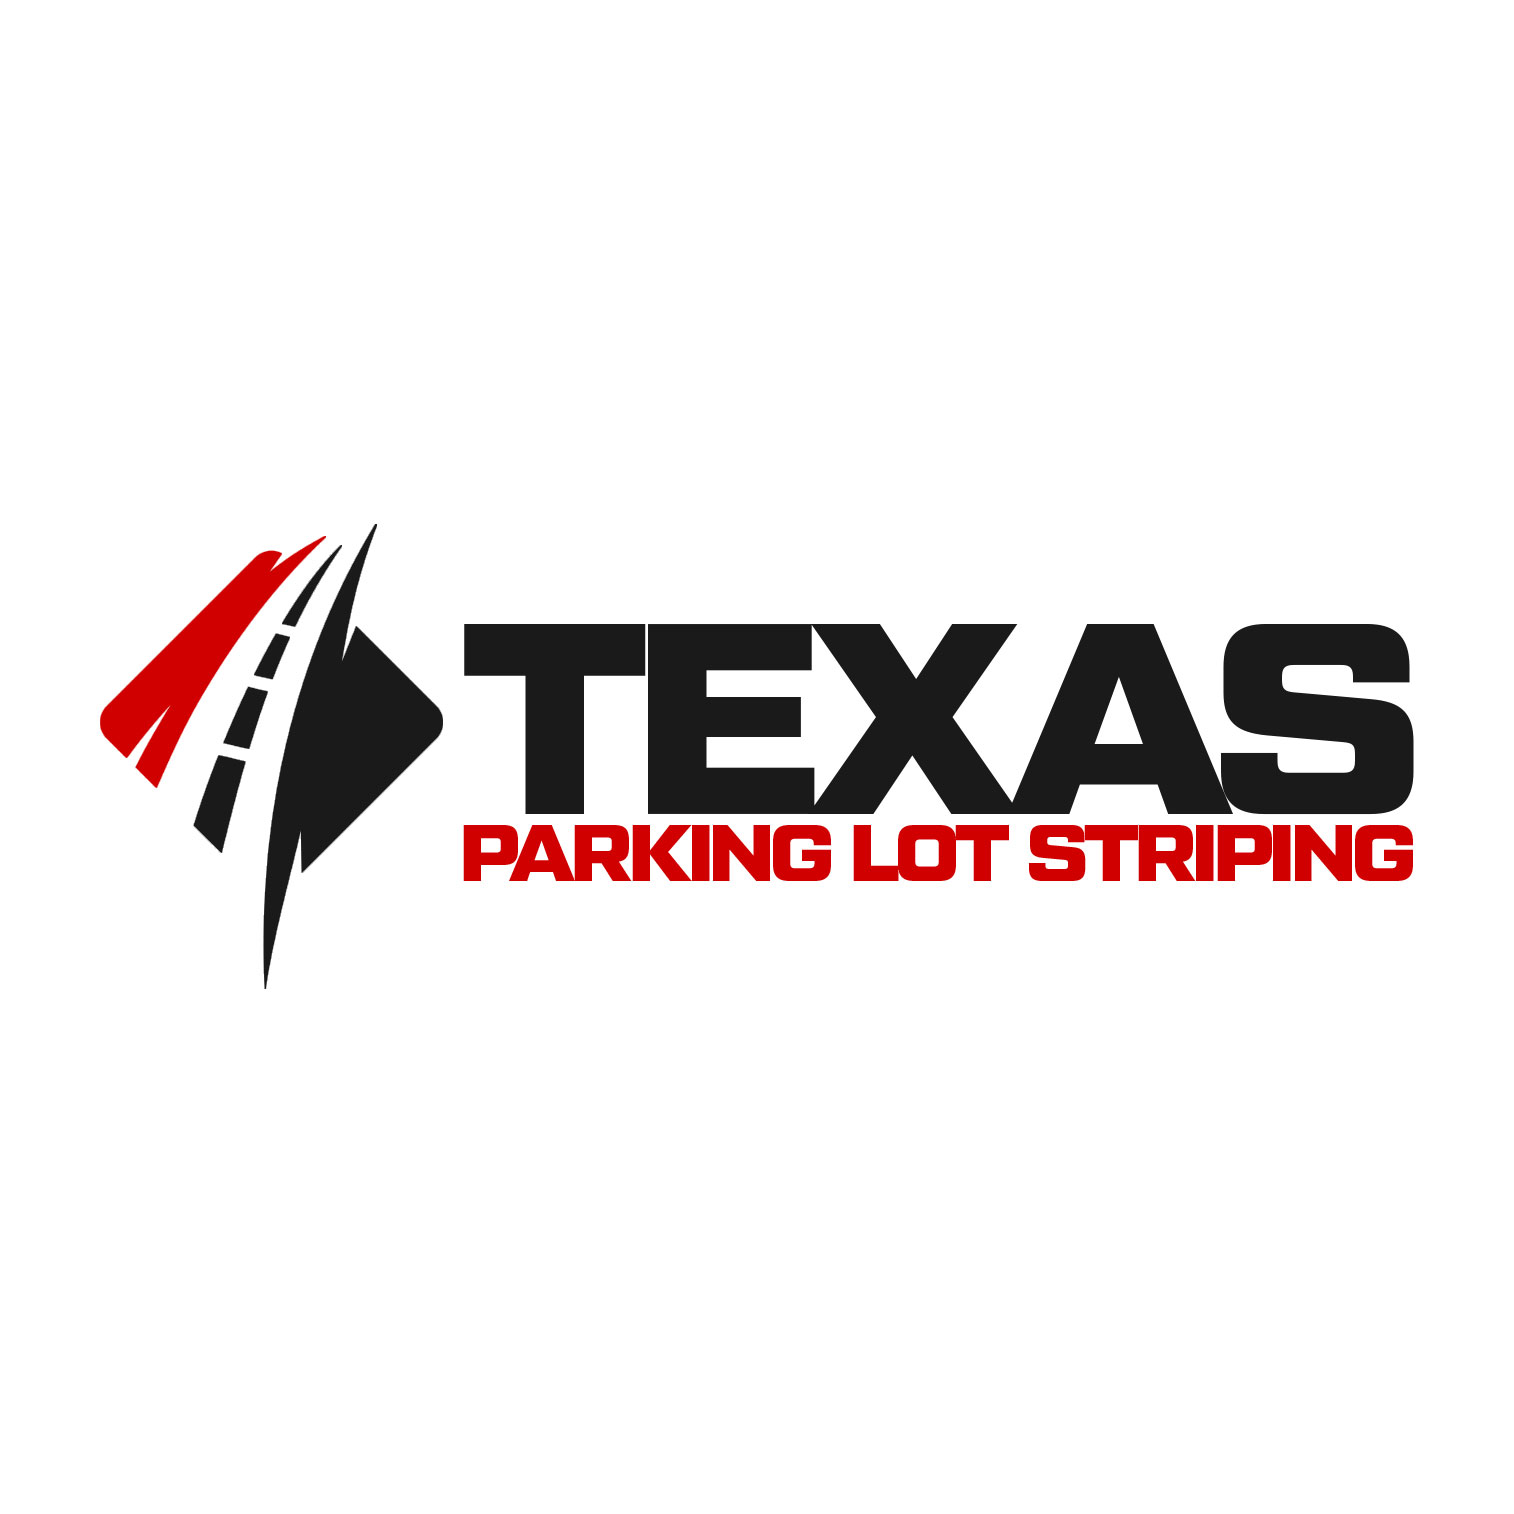 Texas Parking Lot Striping Company Offers High-Quality Parking Lot Striping in Dallas, TX